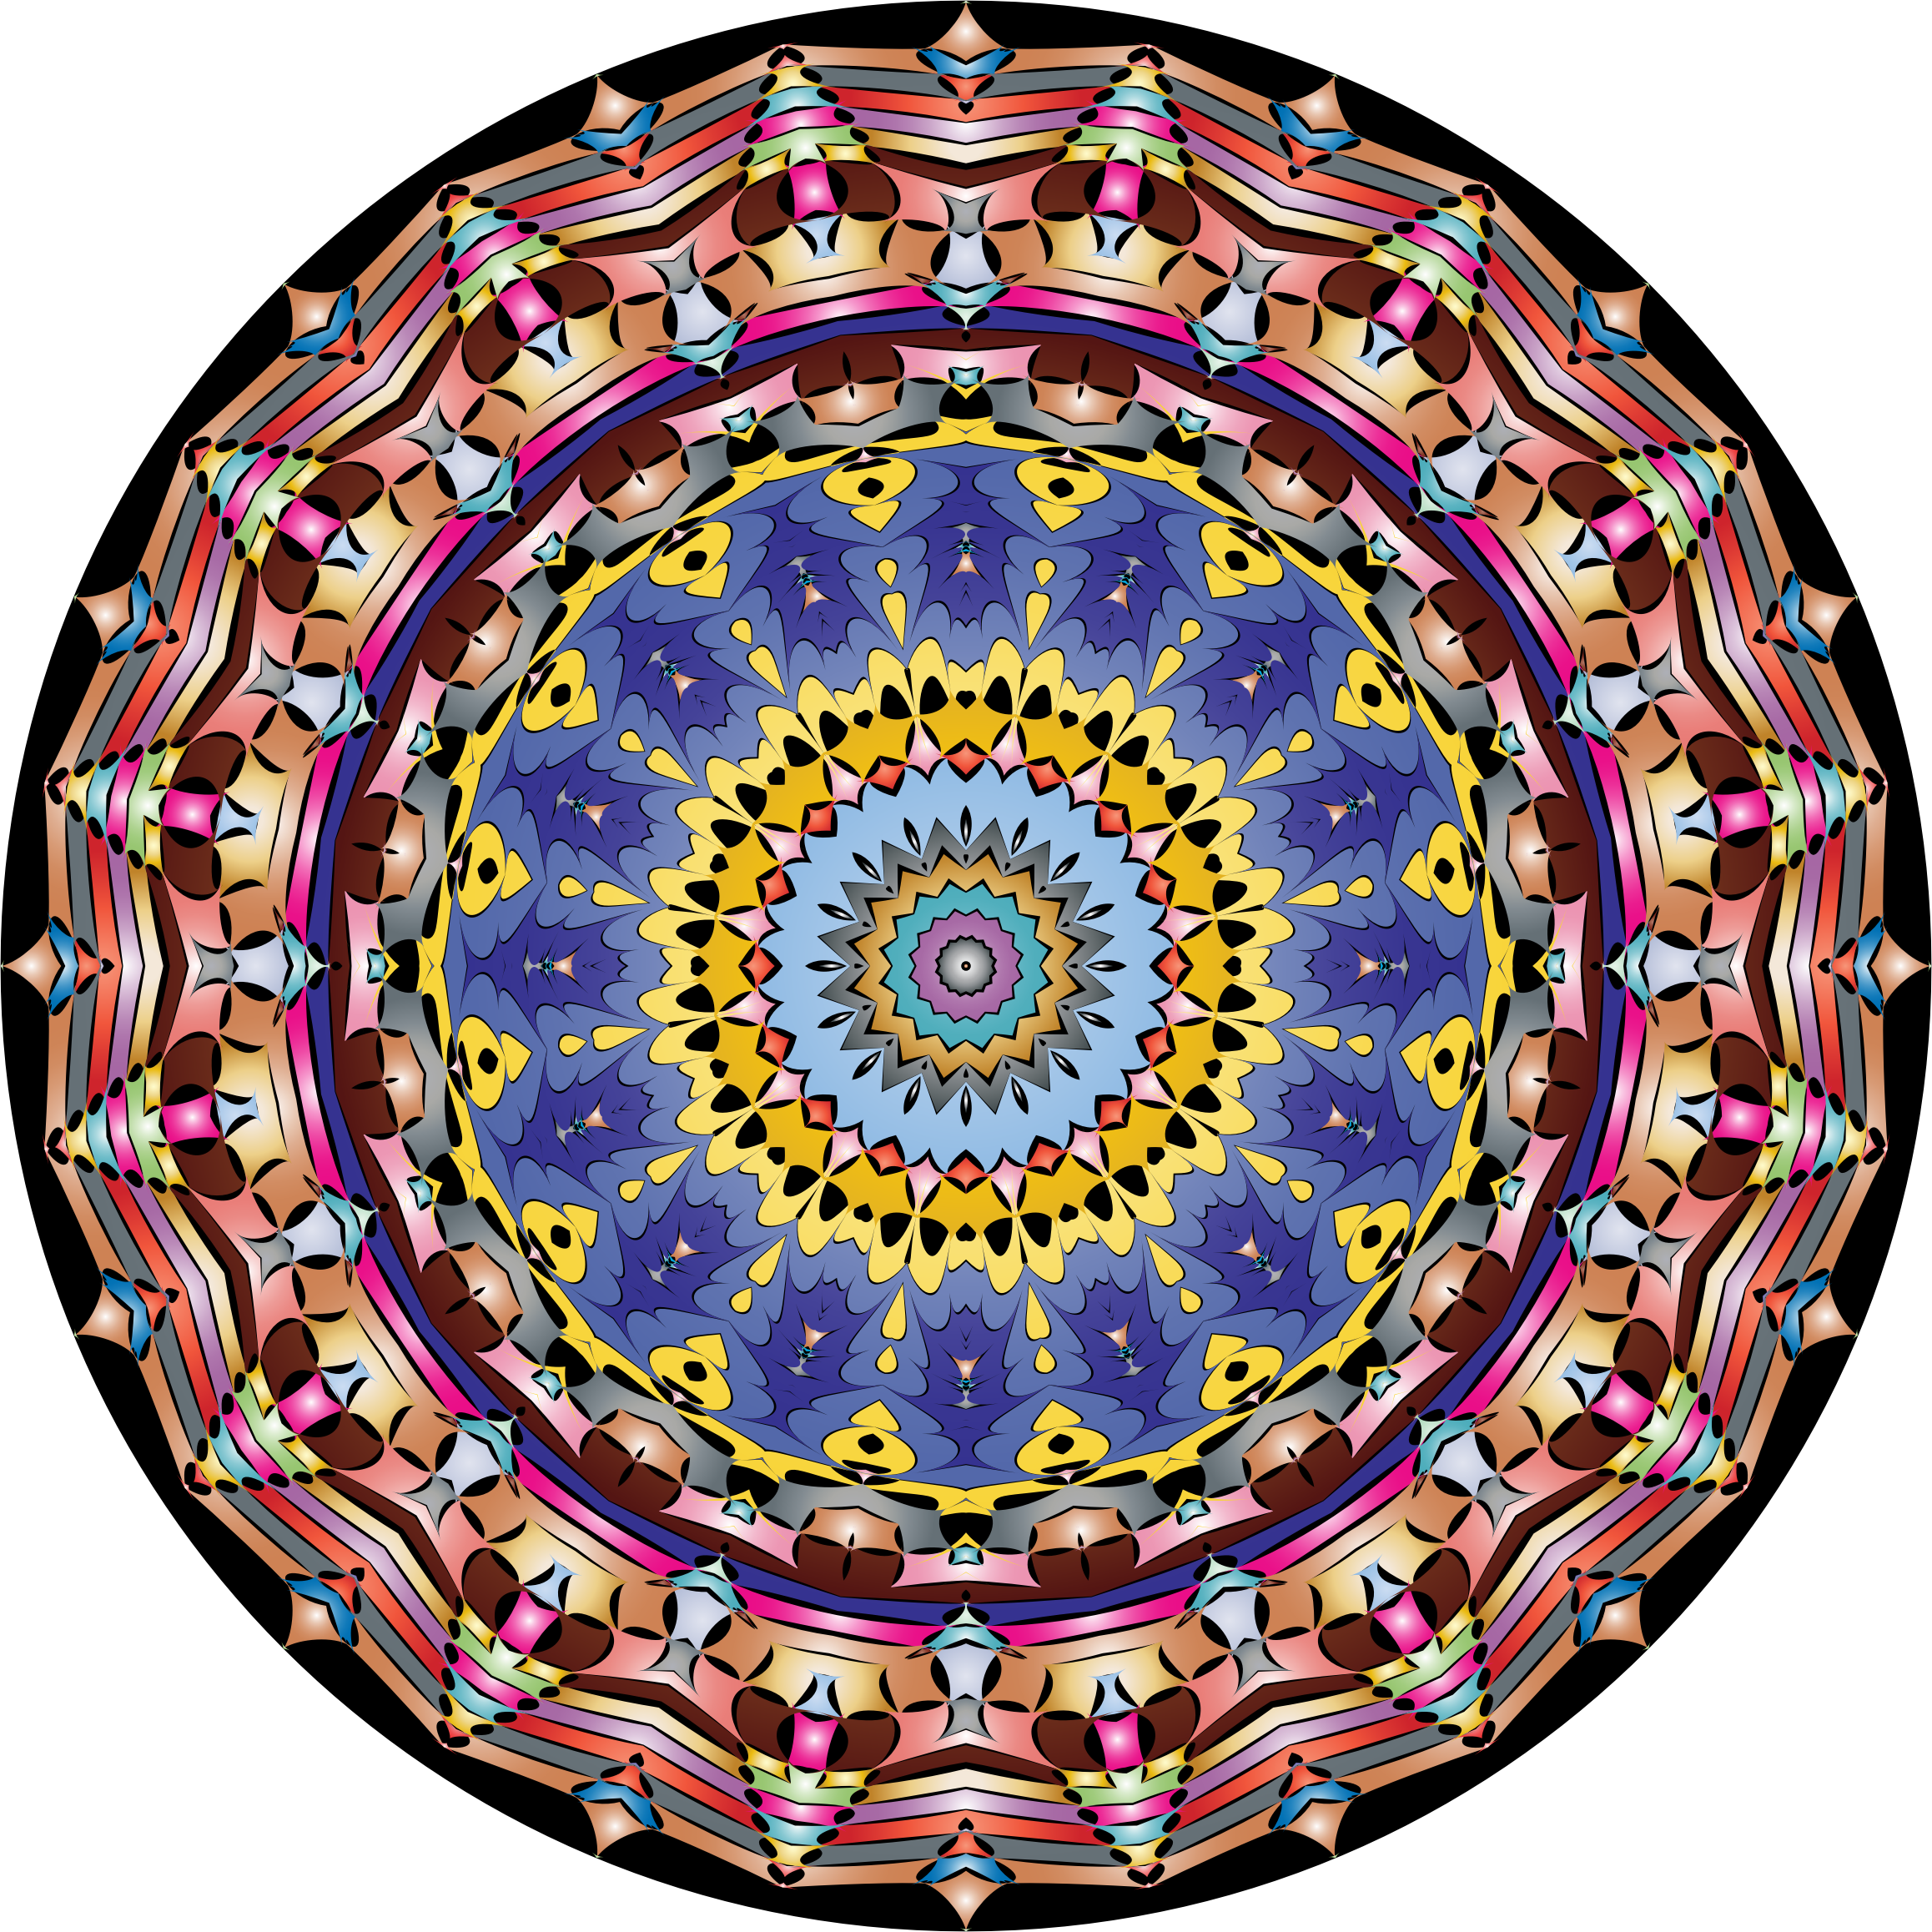 Kaleidoscopic Mandala 3 by GDJ